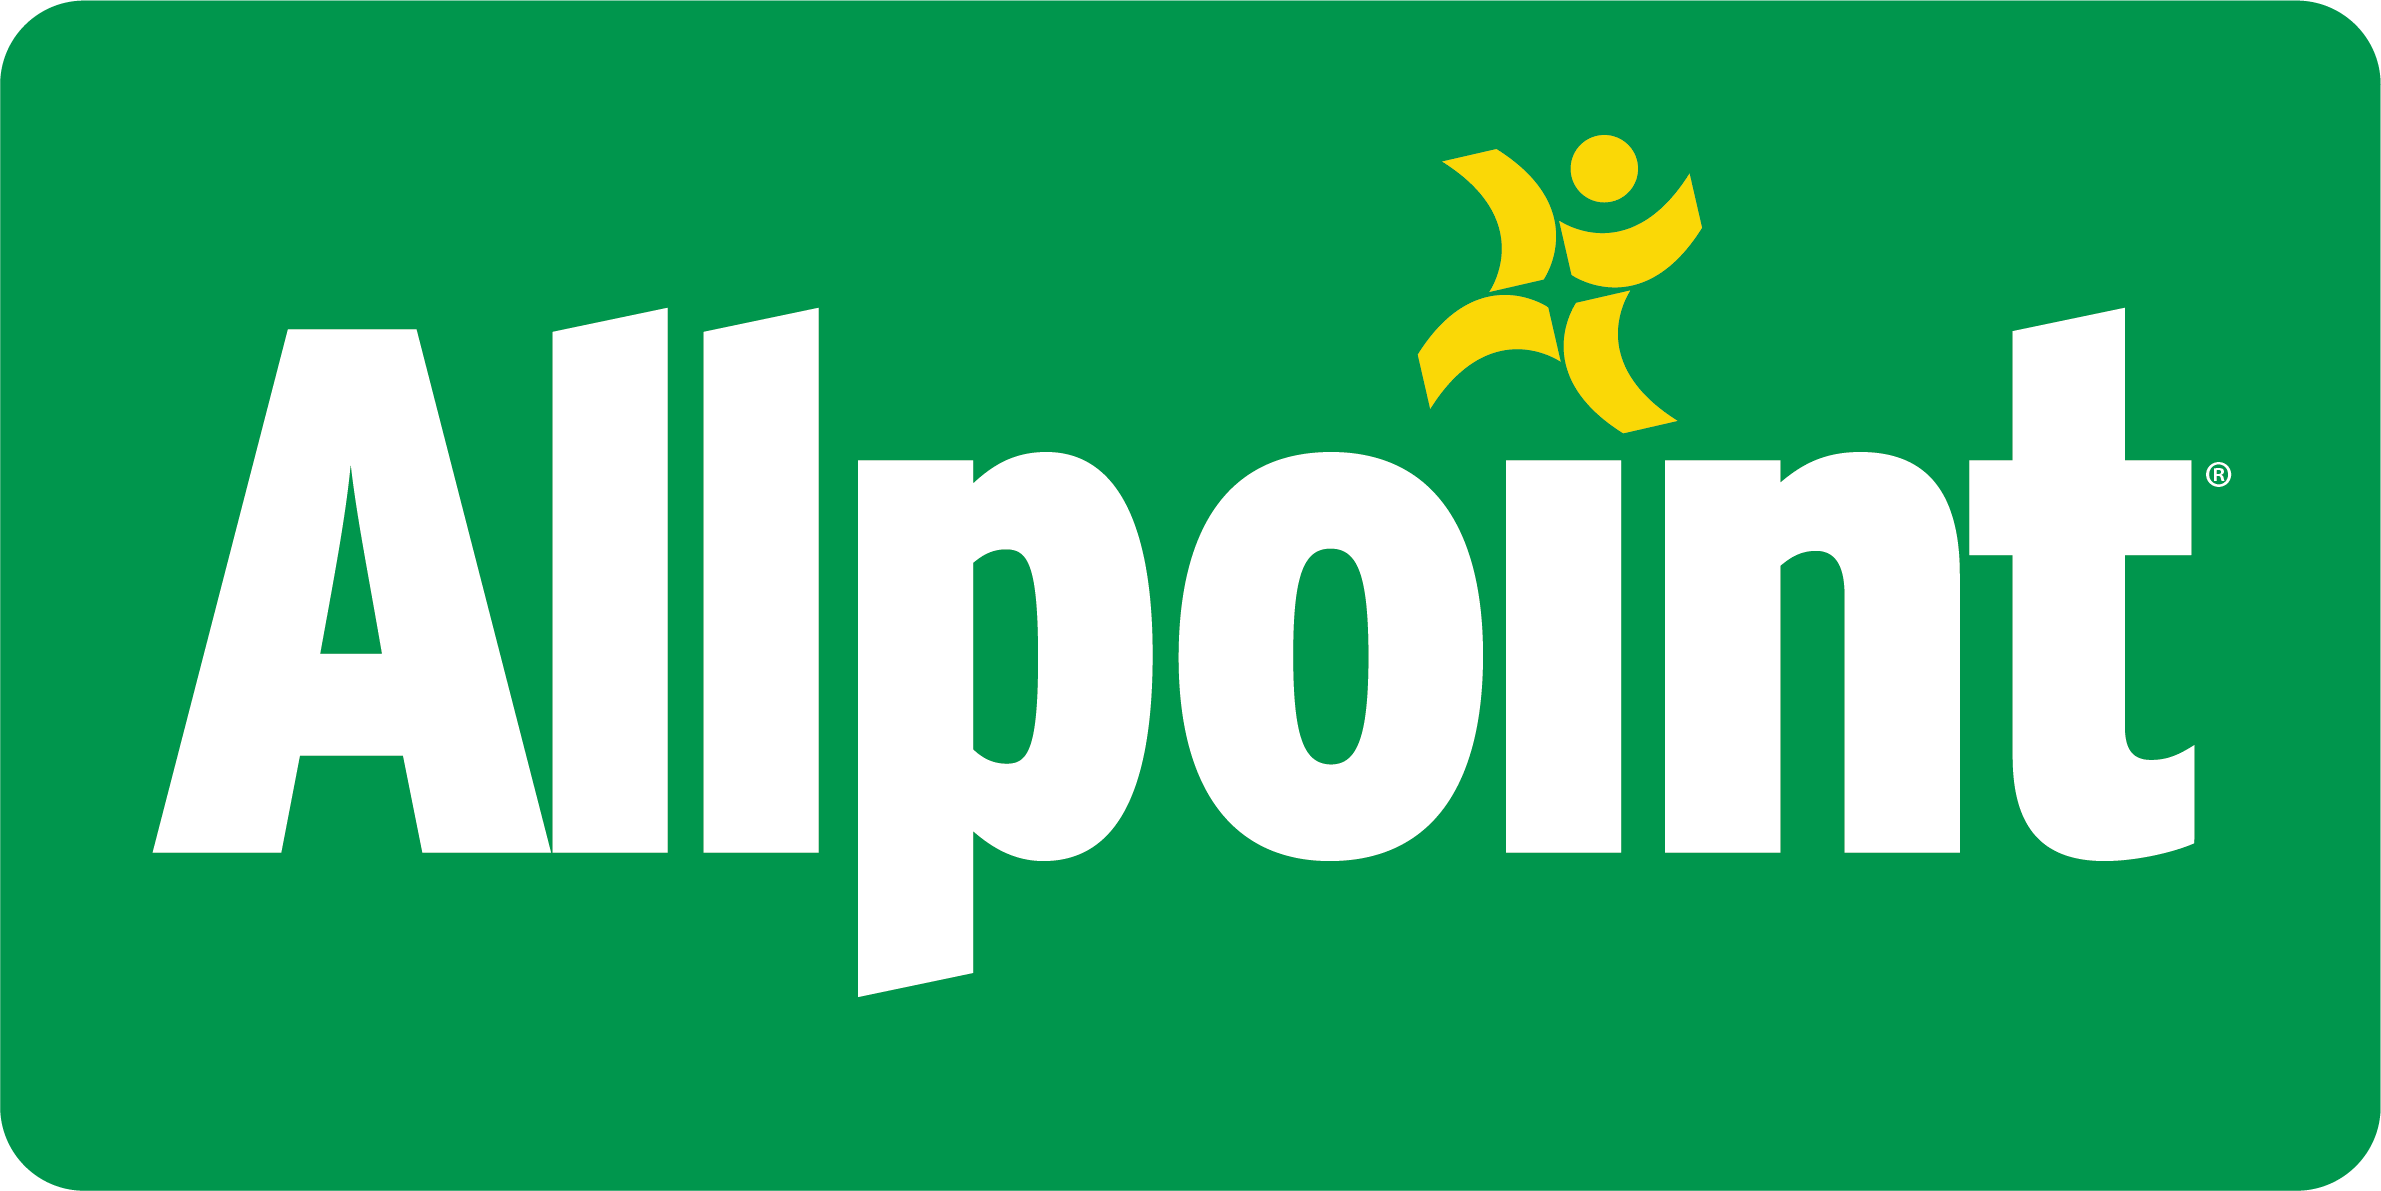 Click the image above to be directed to the Allpoint ATM Locator